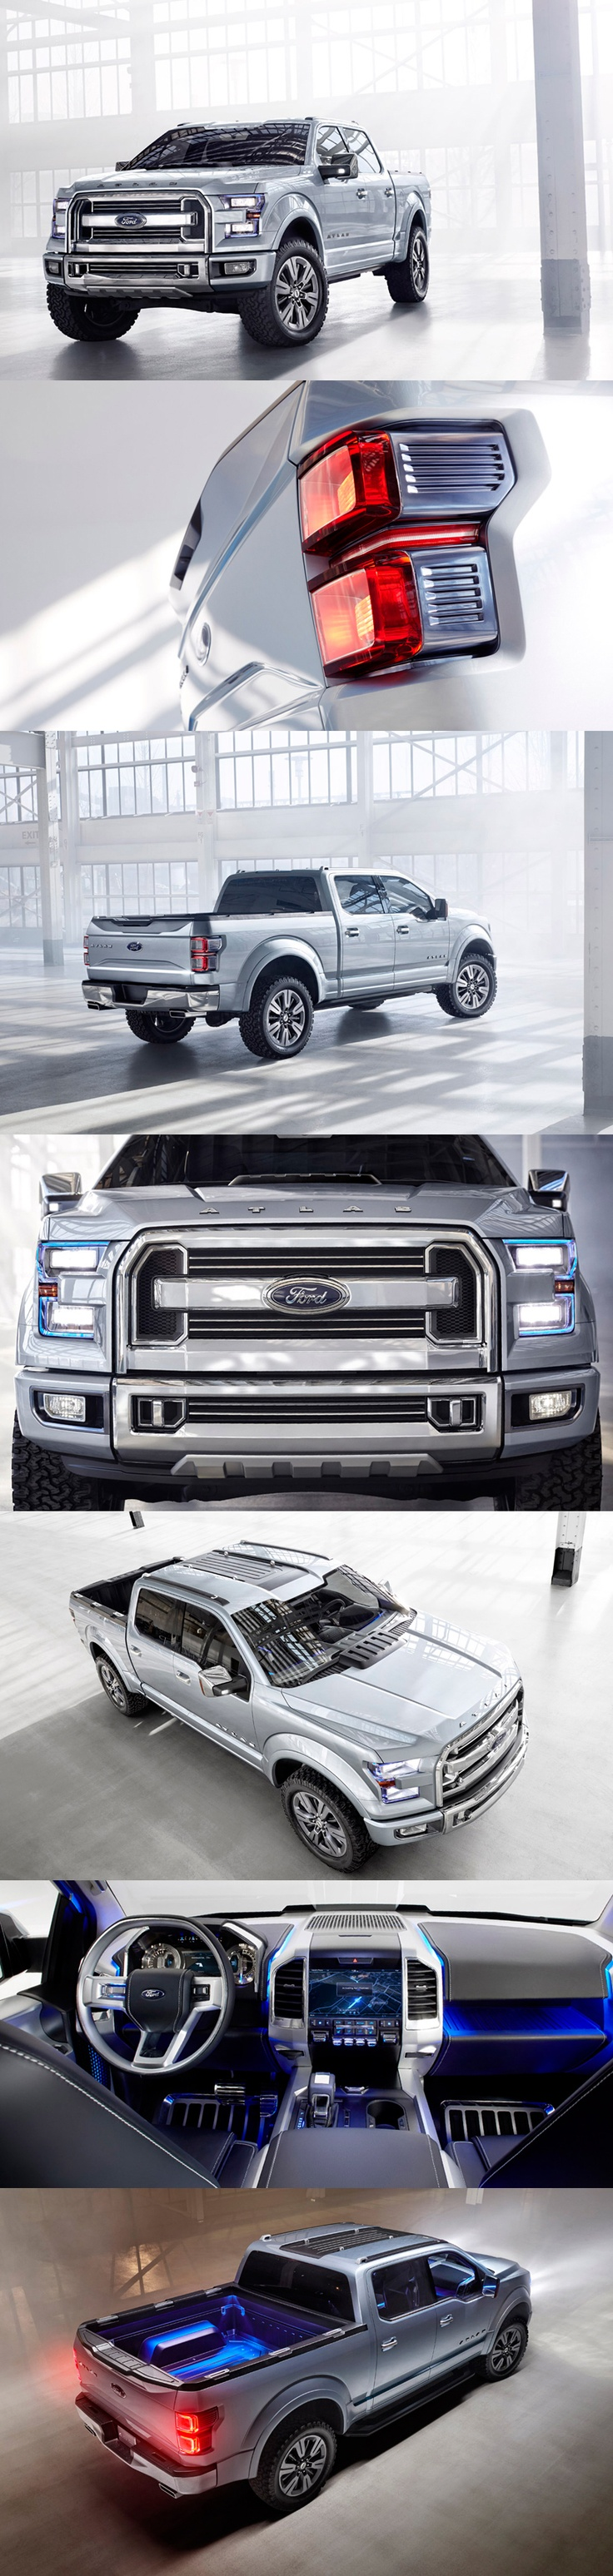 ford atlas pickup truck concept 2013